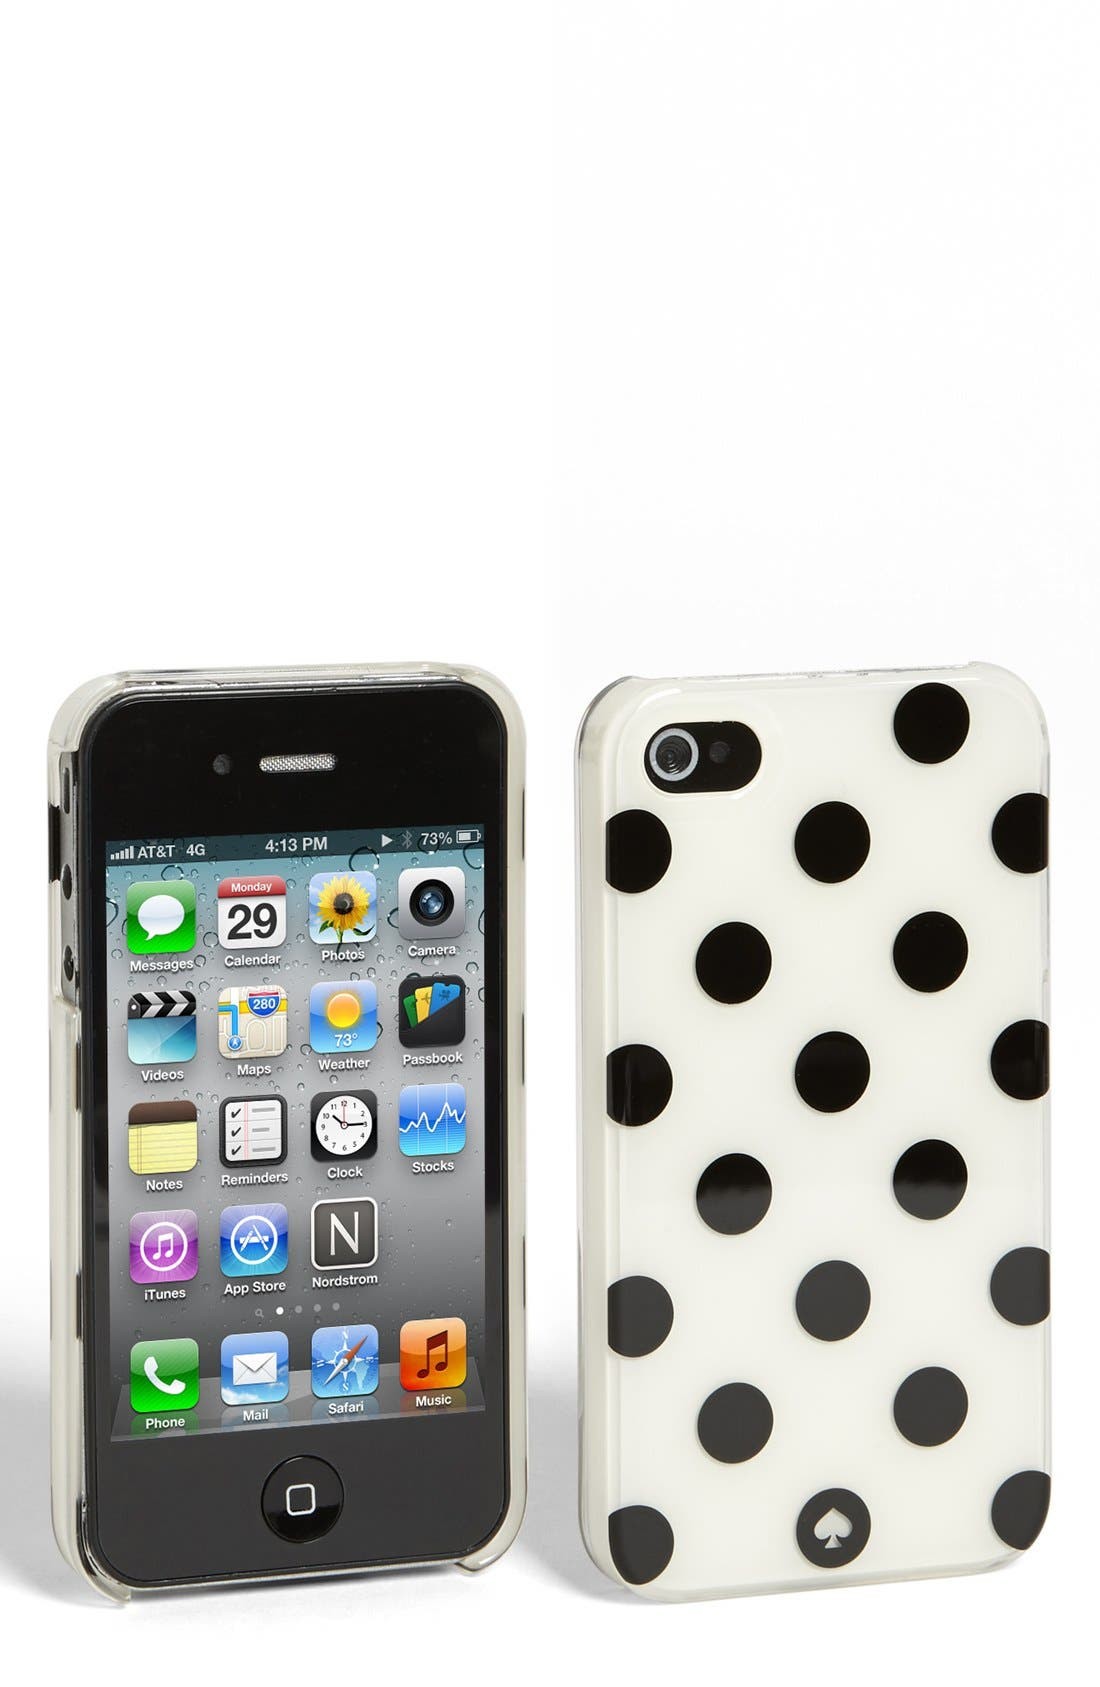 Alternate Image 1 Selected - kate spade new york 'le pavillion' iPhone 4 & 4s case